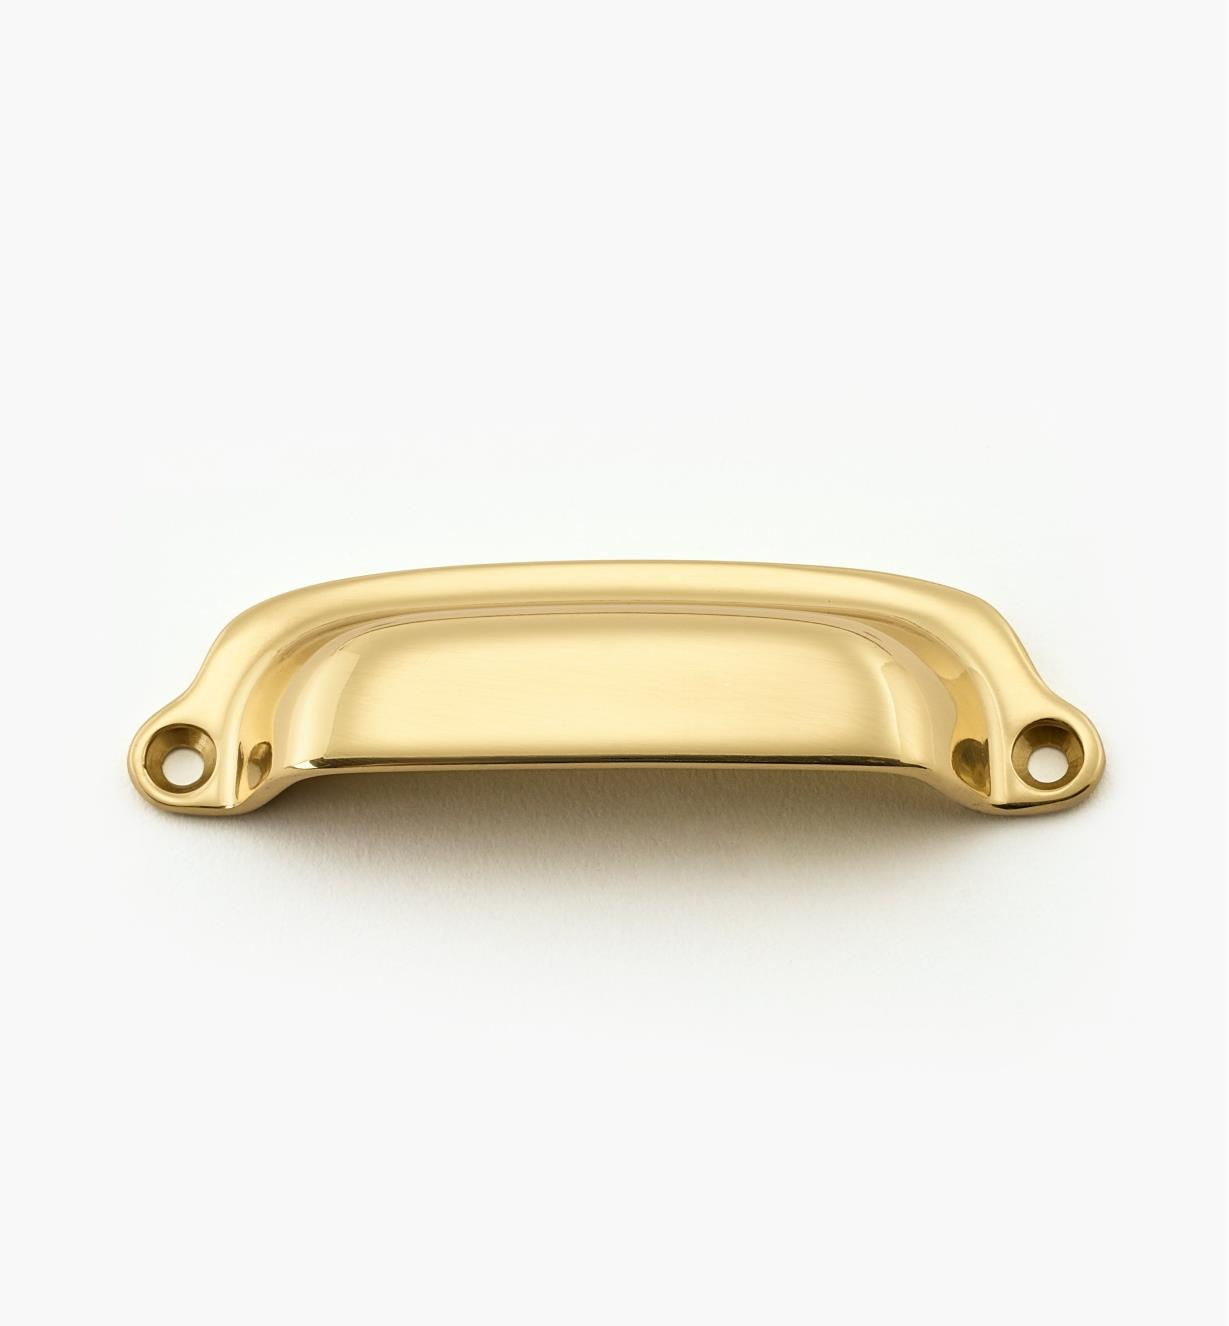 00W8202 - Polished Brass 86mm Forged Pull